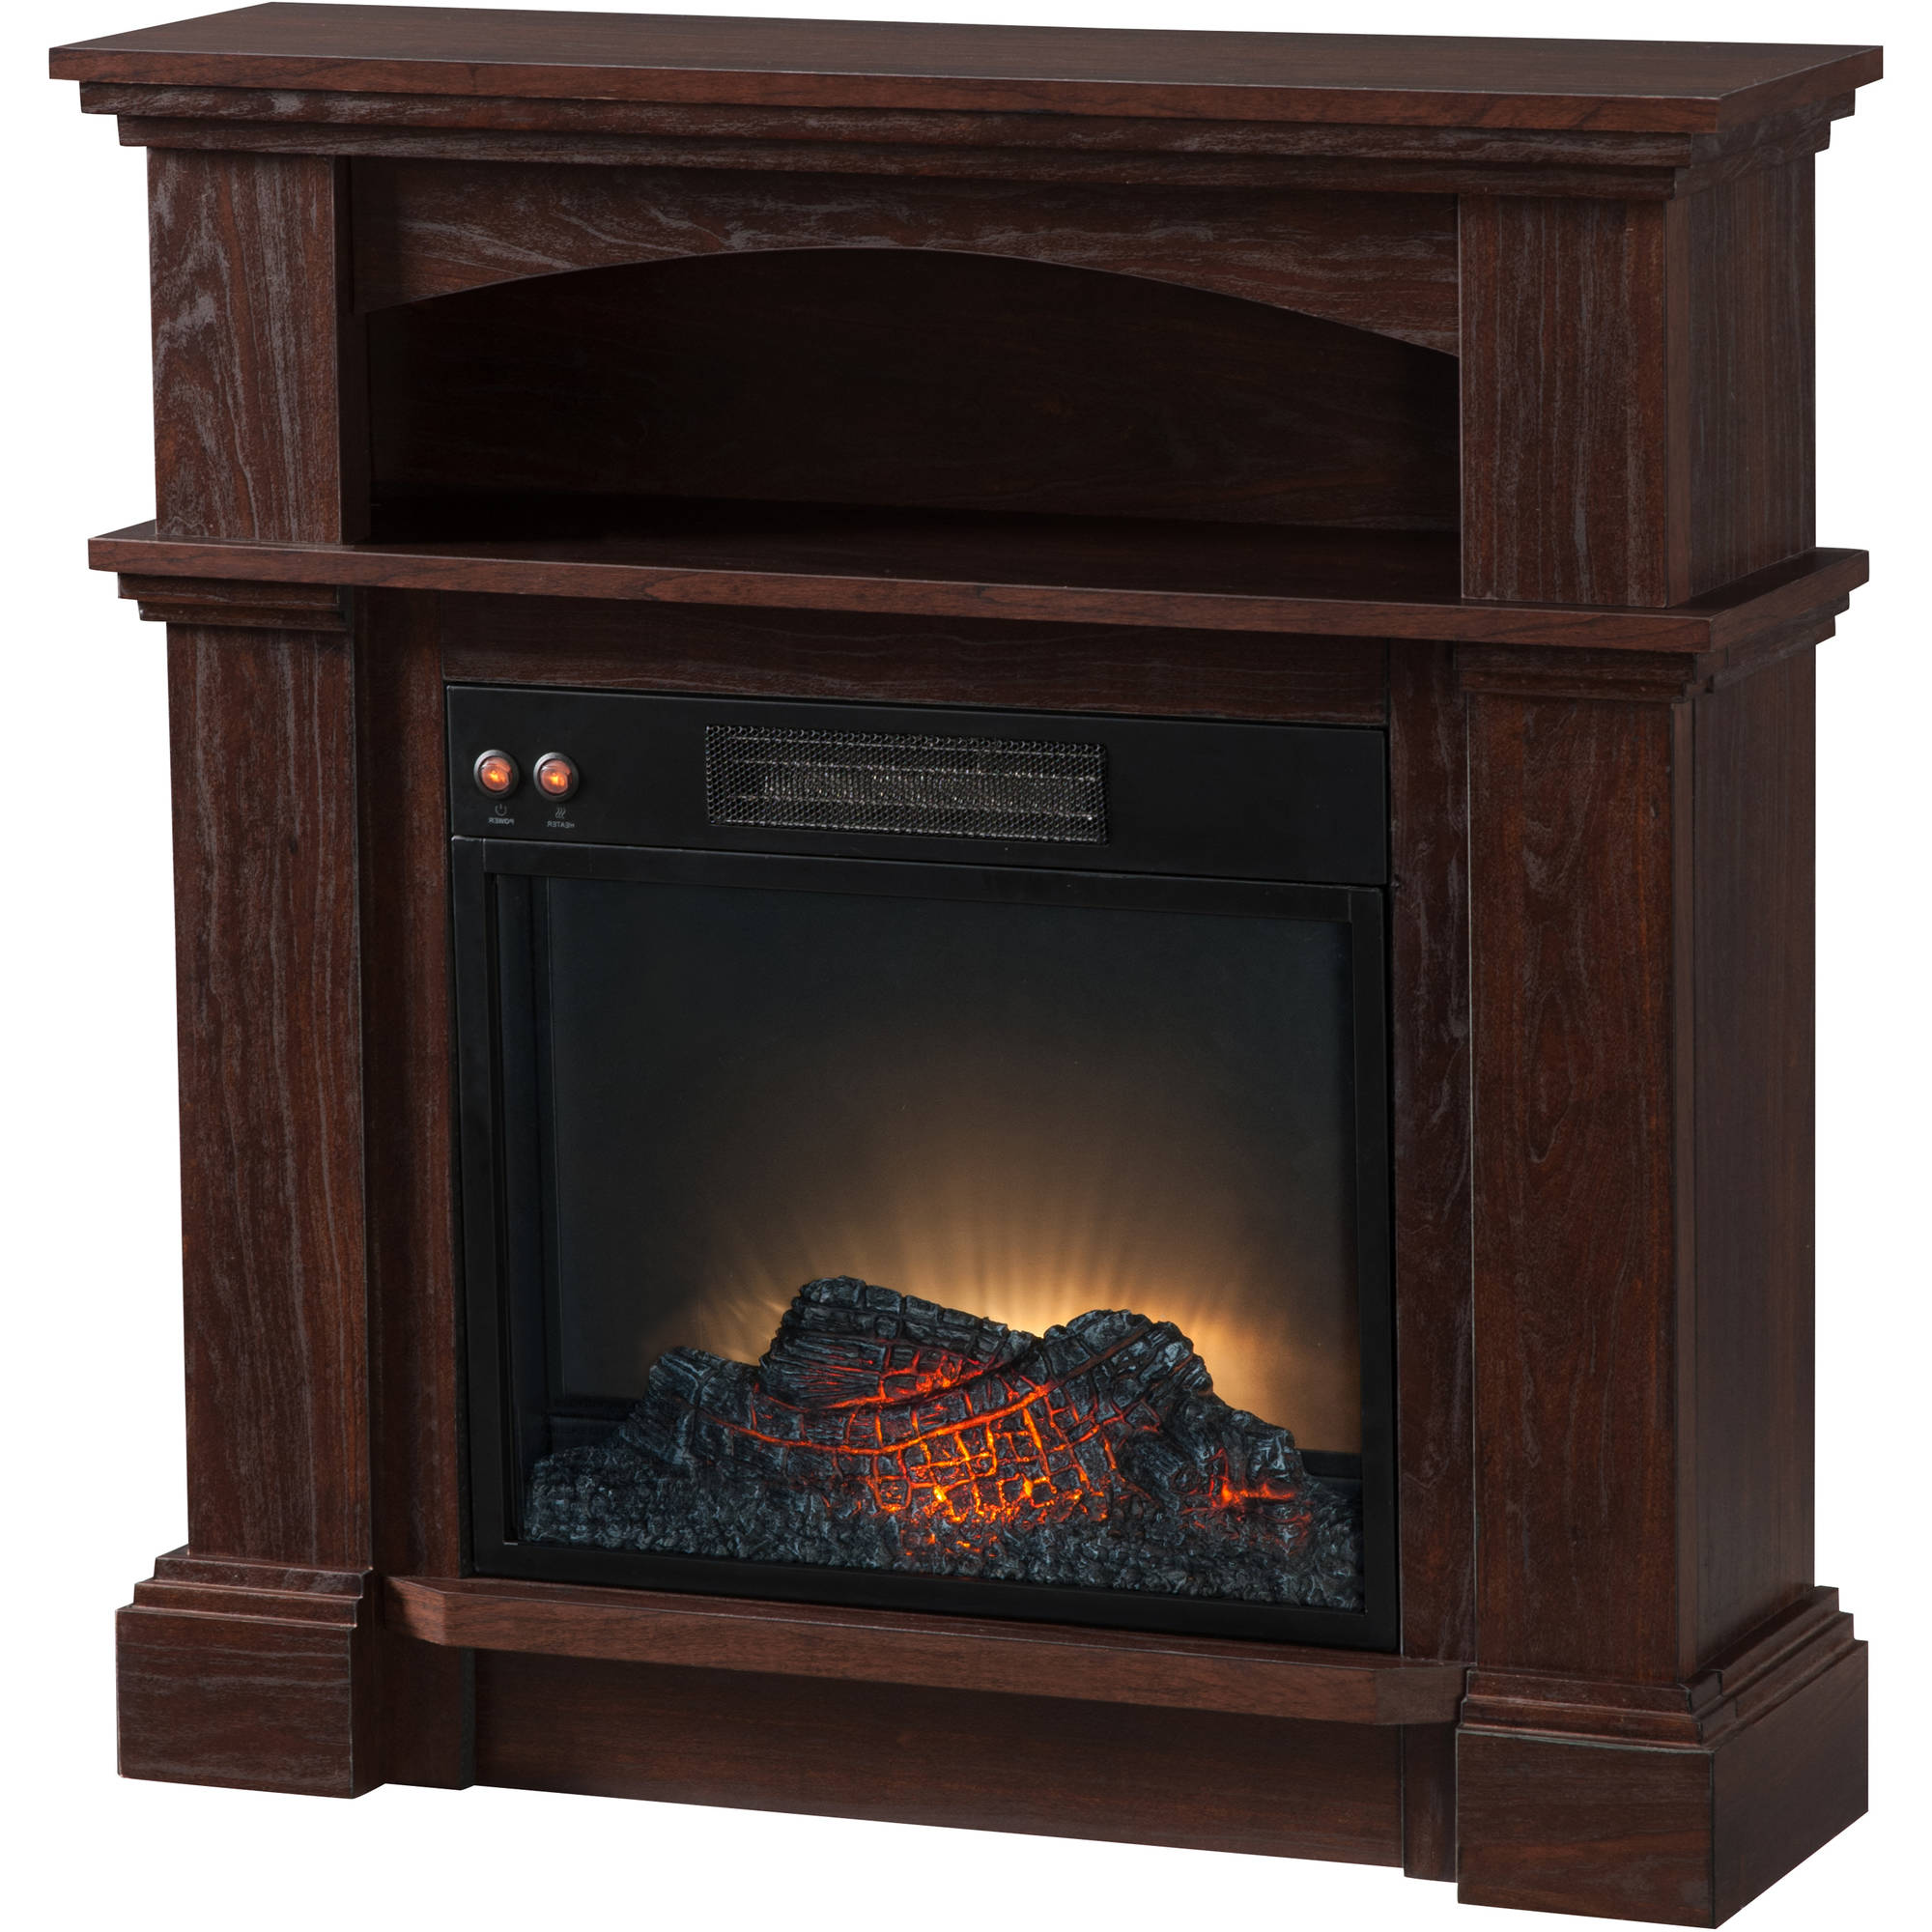 "Prokonian Electric Fireplace with 31"" Mantel SPD"